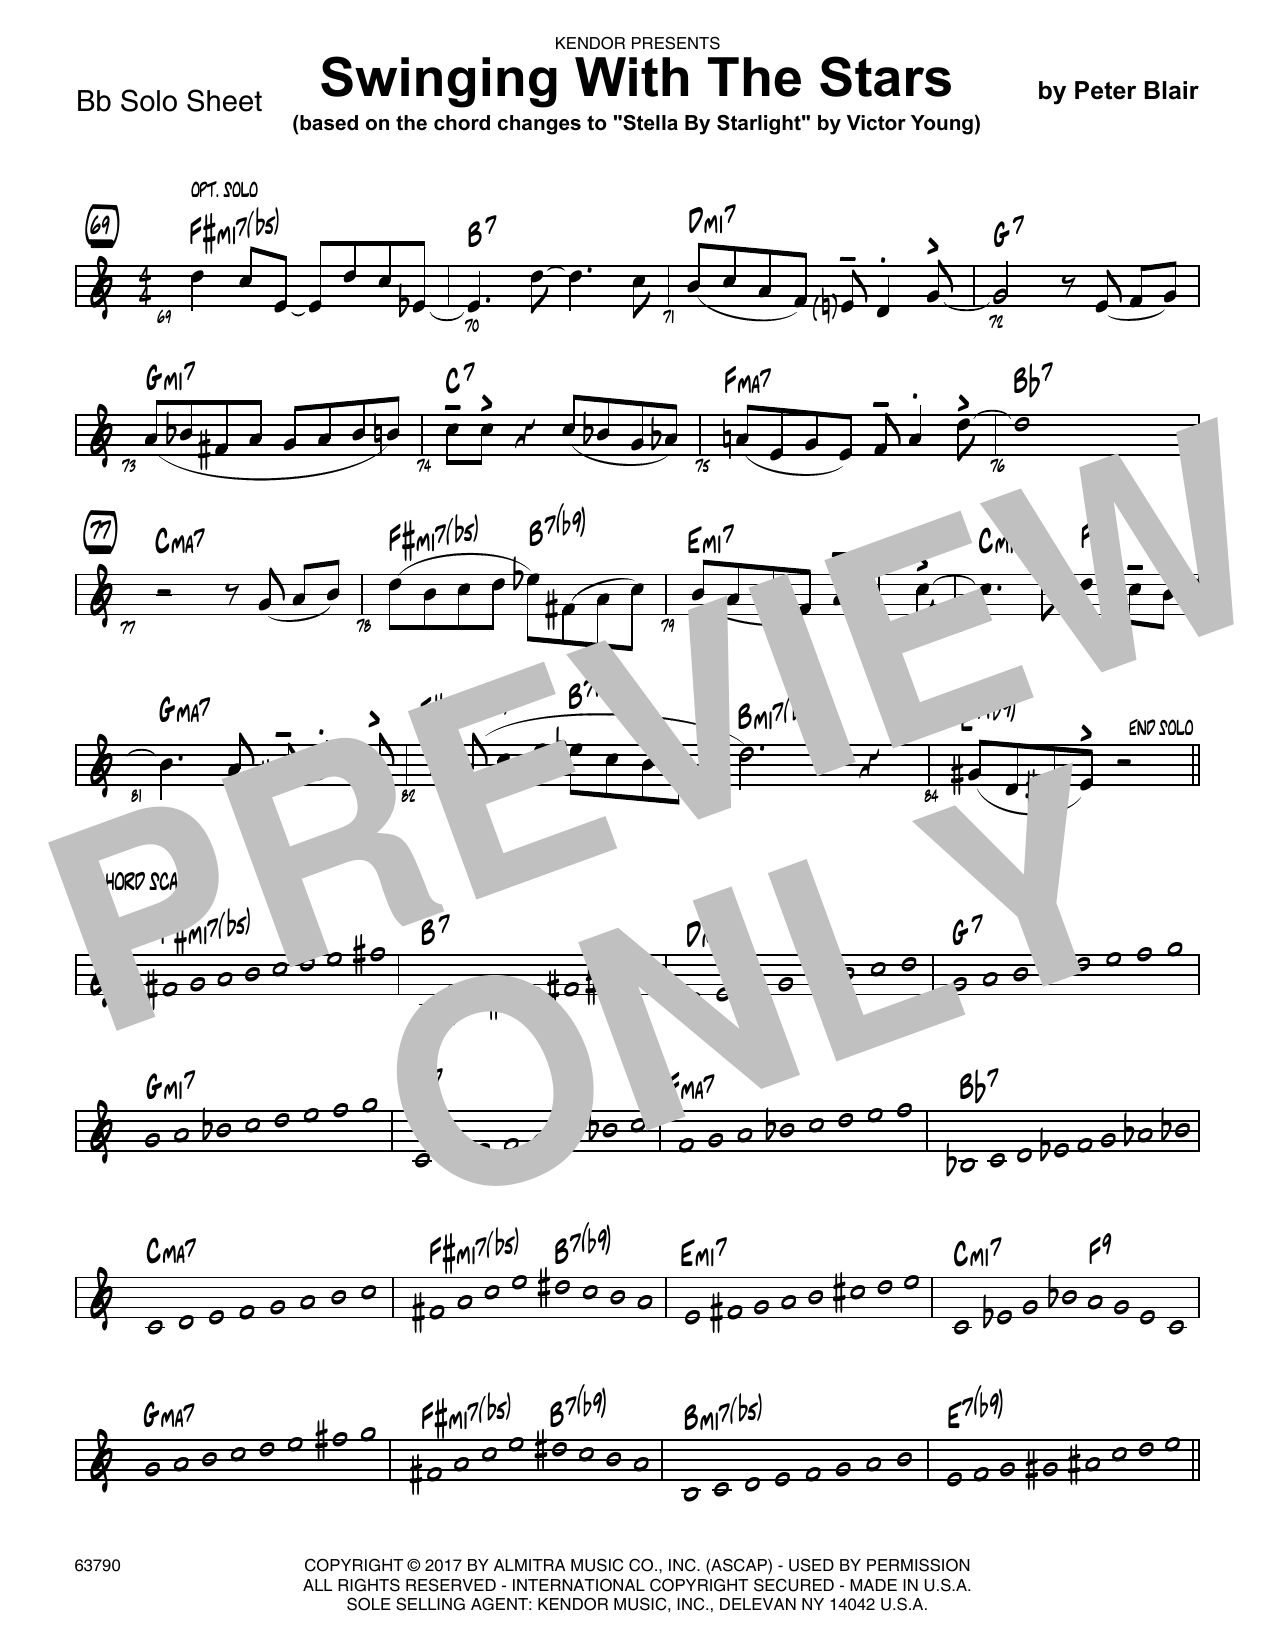 Peter Blair Swinging With The Stars (based on Stella By Starlight by Victor Young) - Solo Sheet - Tenor Sax sheet music preview music notes and score for Jazz Ensemble including 1 page(s)